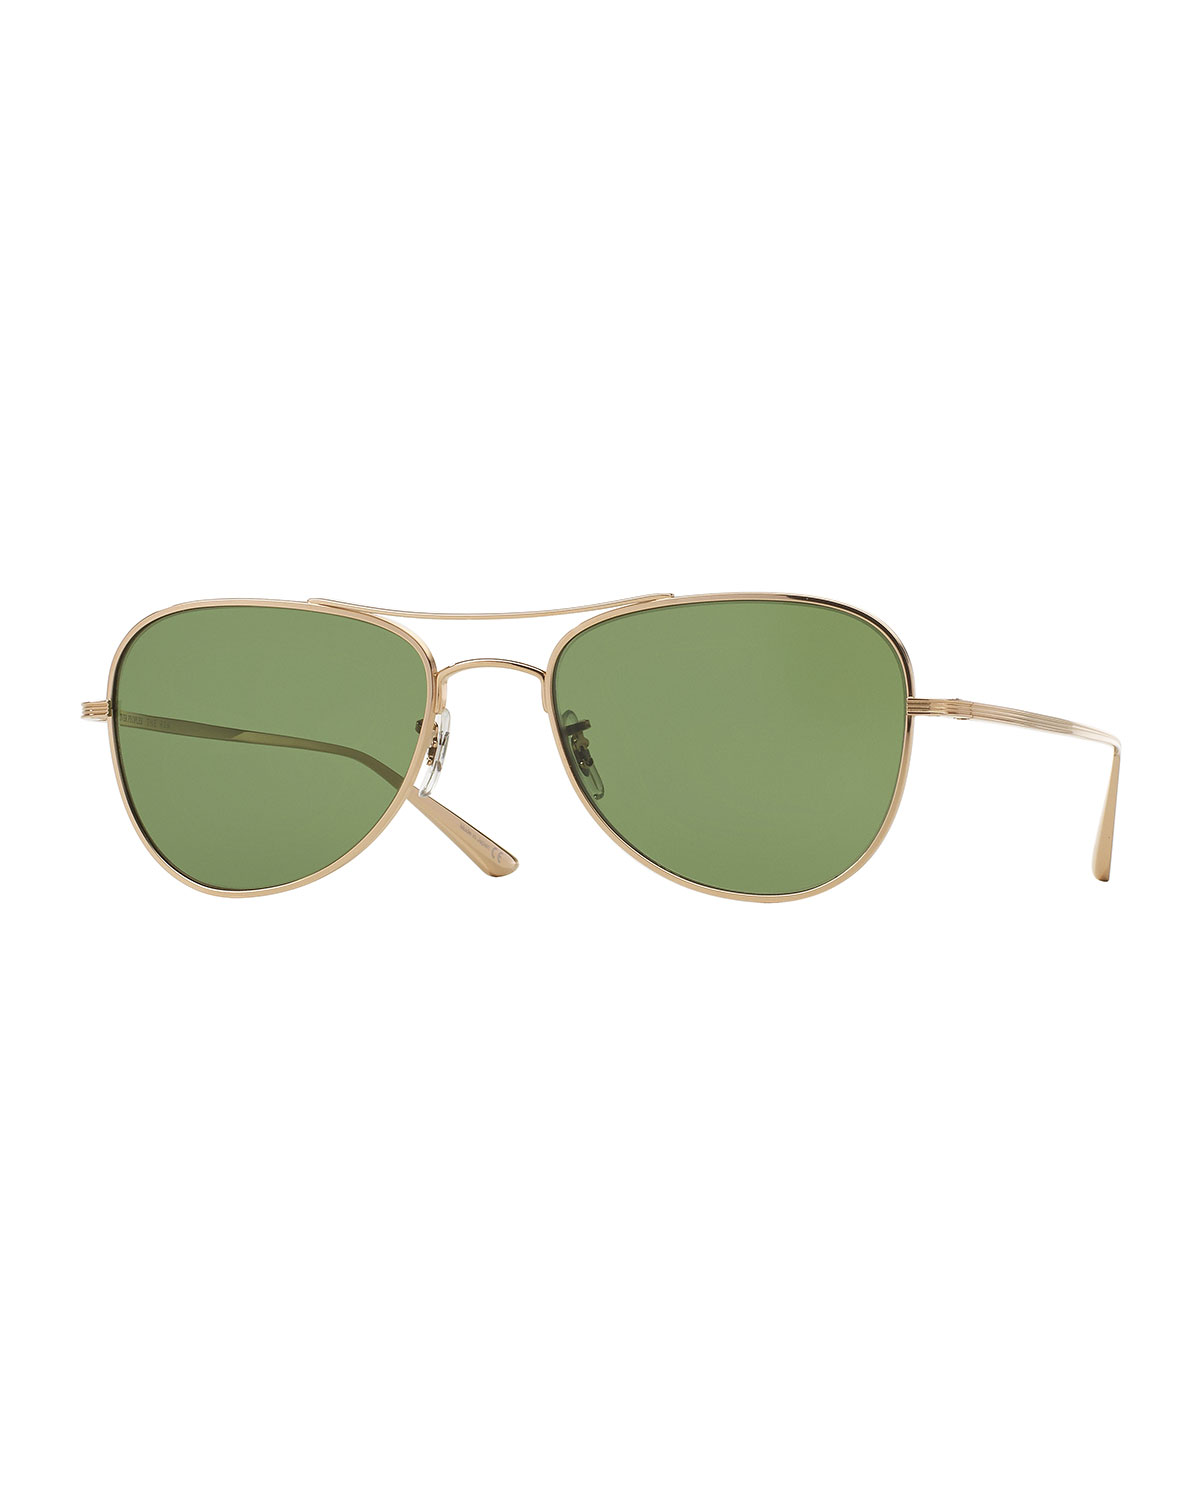 Oliver Peoples The Row Executive Suite Photochromic Aviator Sunglasses, Gold / Green